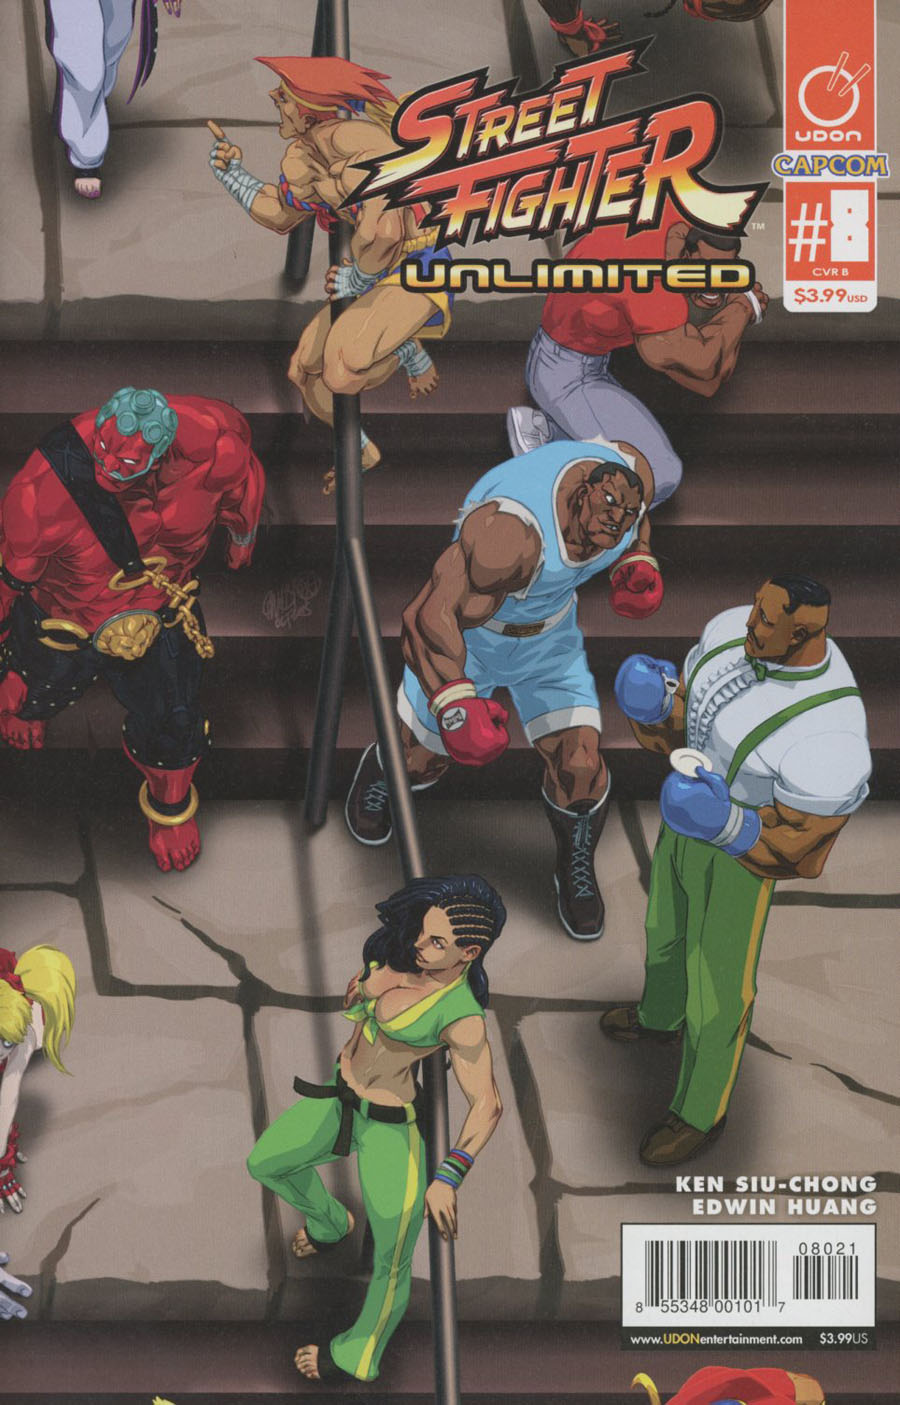 Street Fighter Unlimited #8 Cover B Variant Jeffrey Chamba Cruz Ultra Jam Puzzle Cover